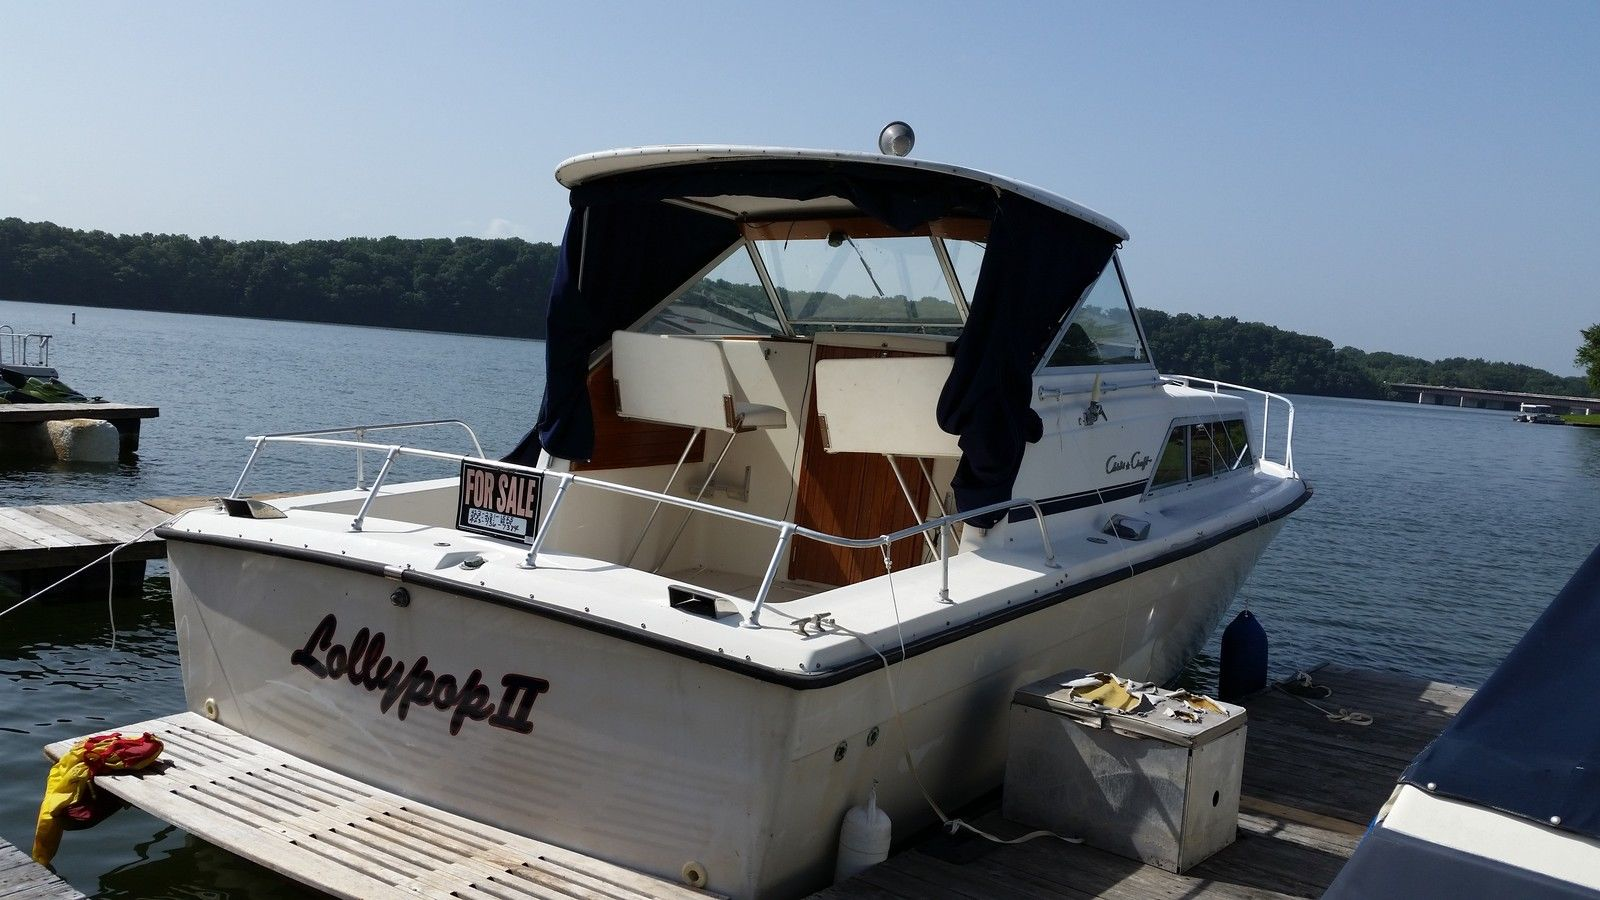 Chris Craft Cabin Cruiser 1979 for sale for $3,500 - Boats